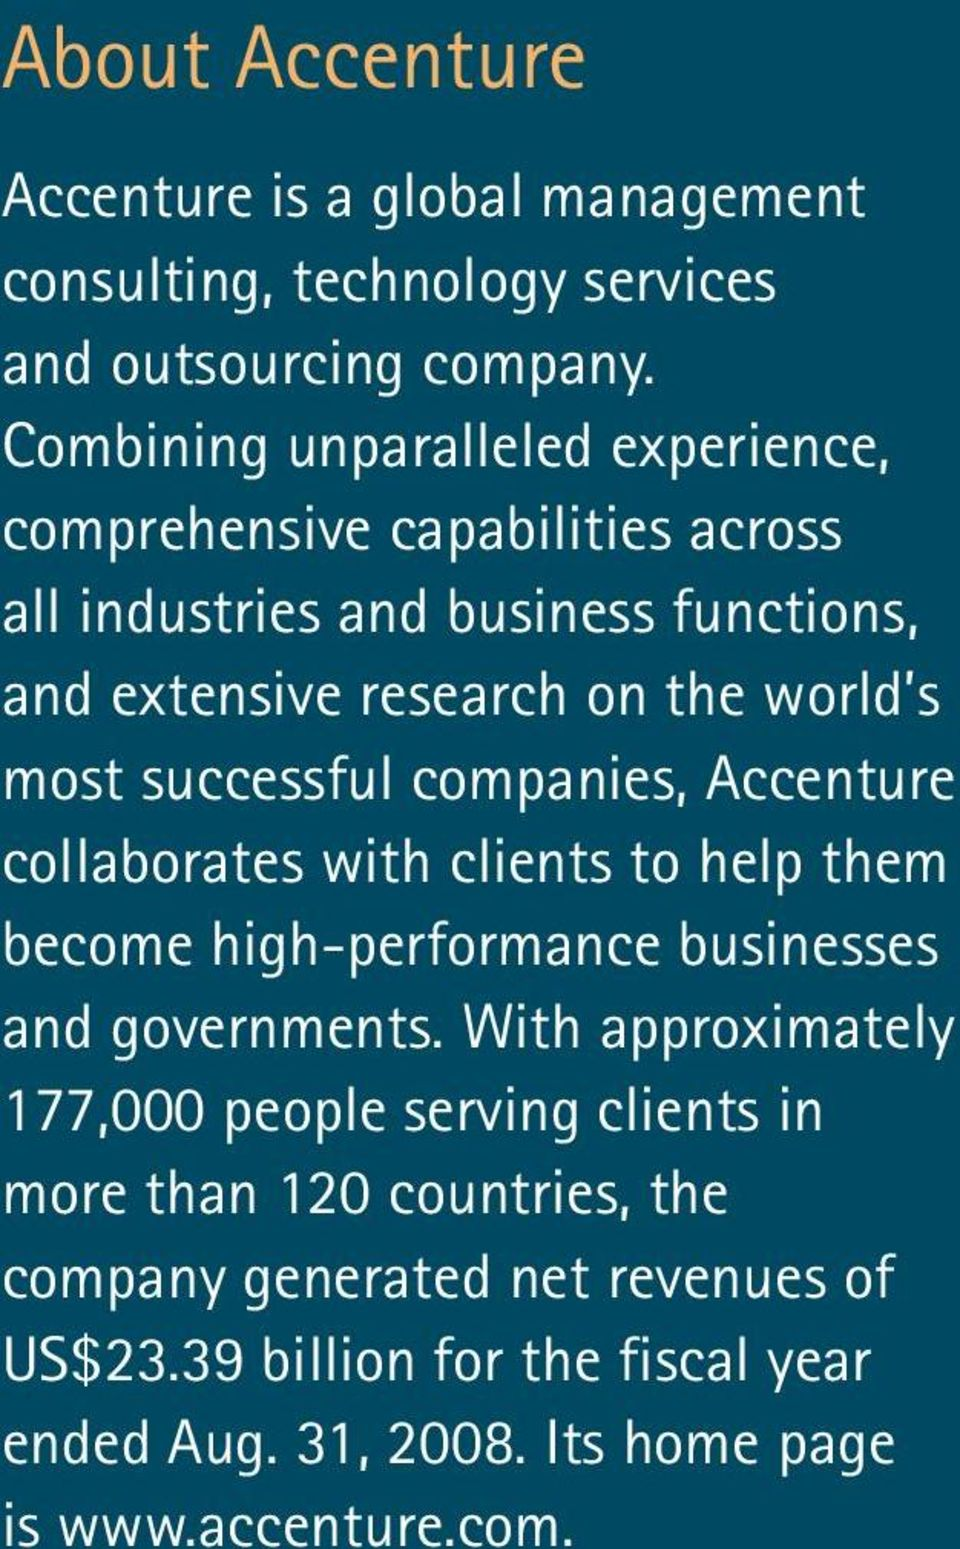 most successful companies, Accenture collaborates with clients to help them become high-performance businesses and governments.